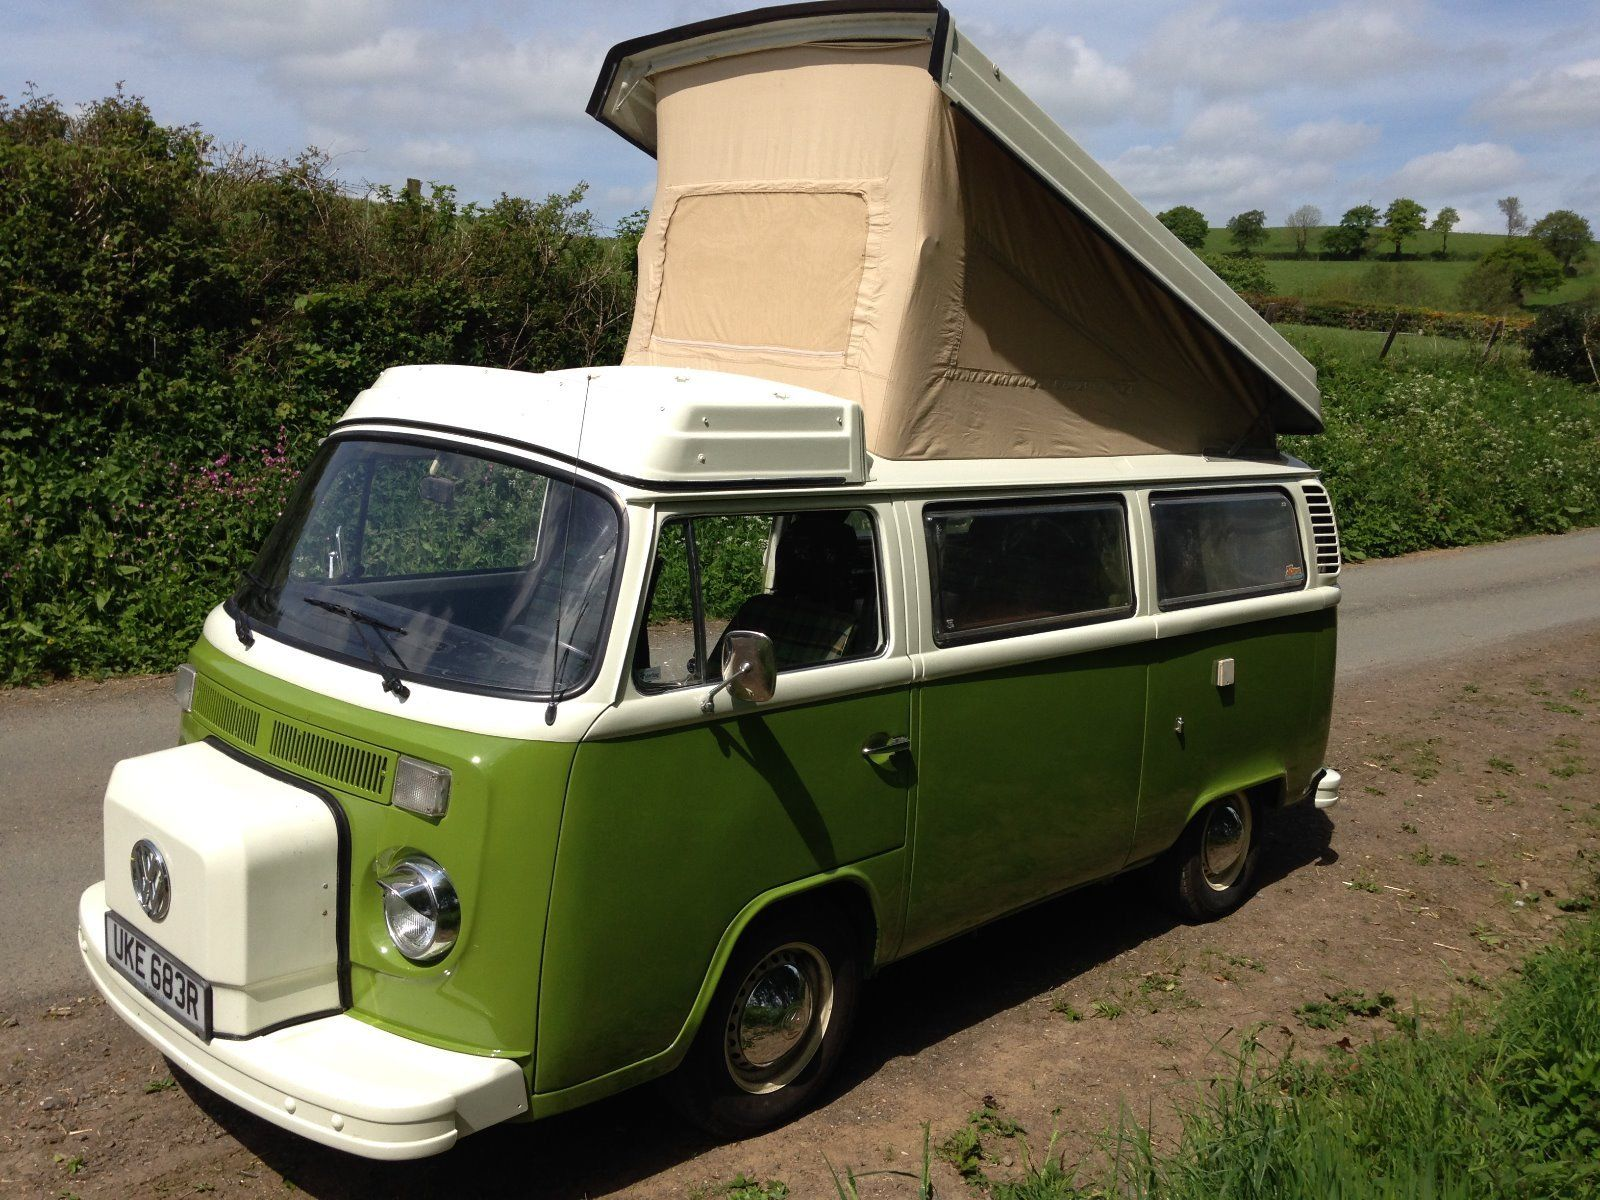 1977 Vw Westfalia Camper Sold Kult Kars